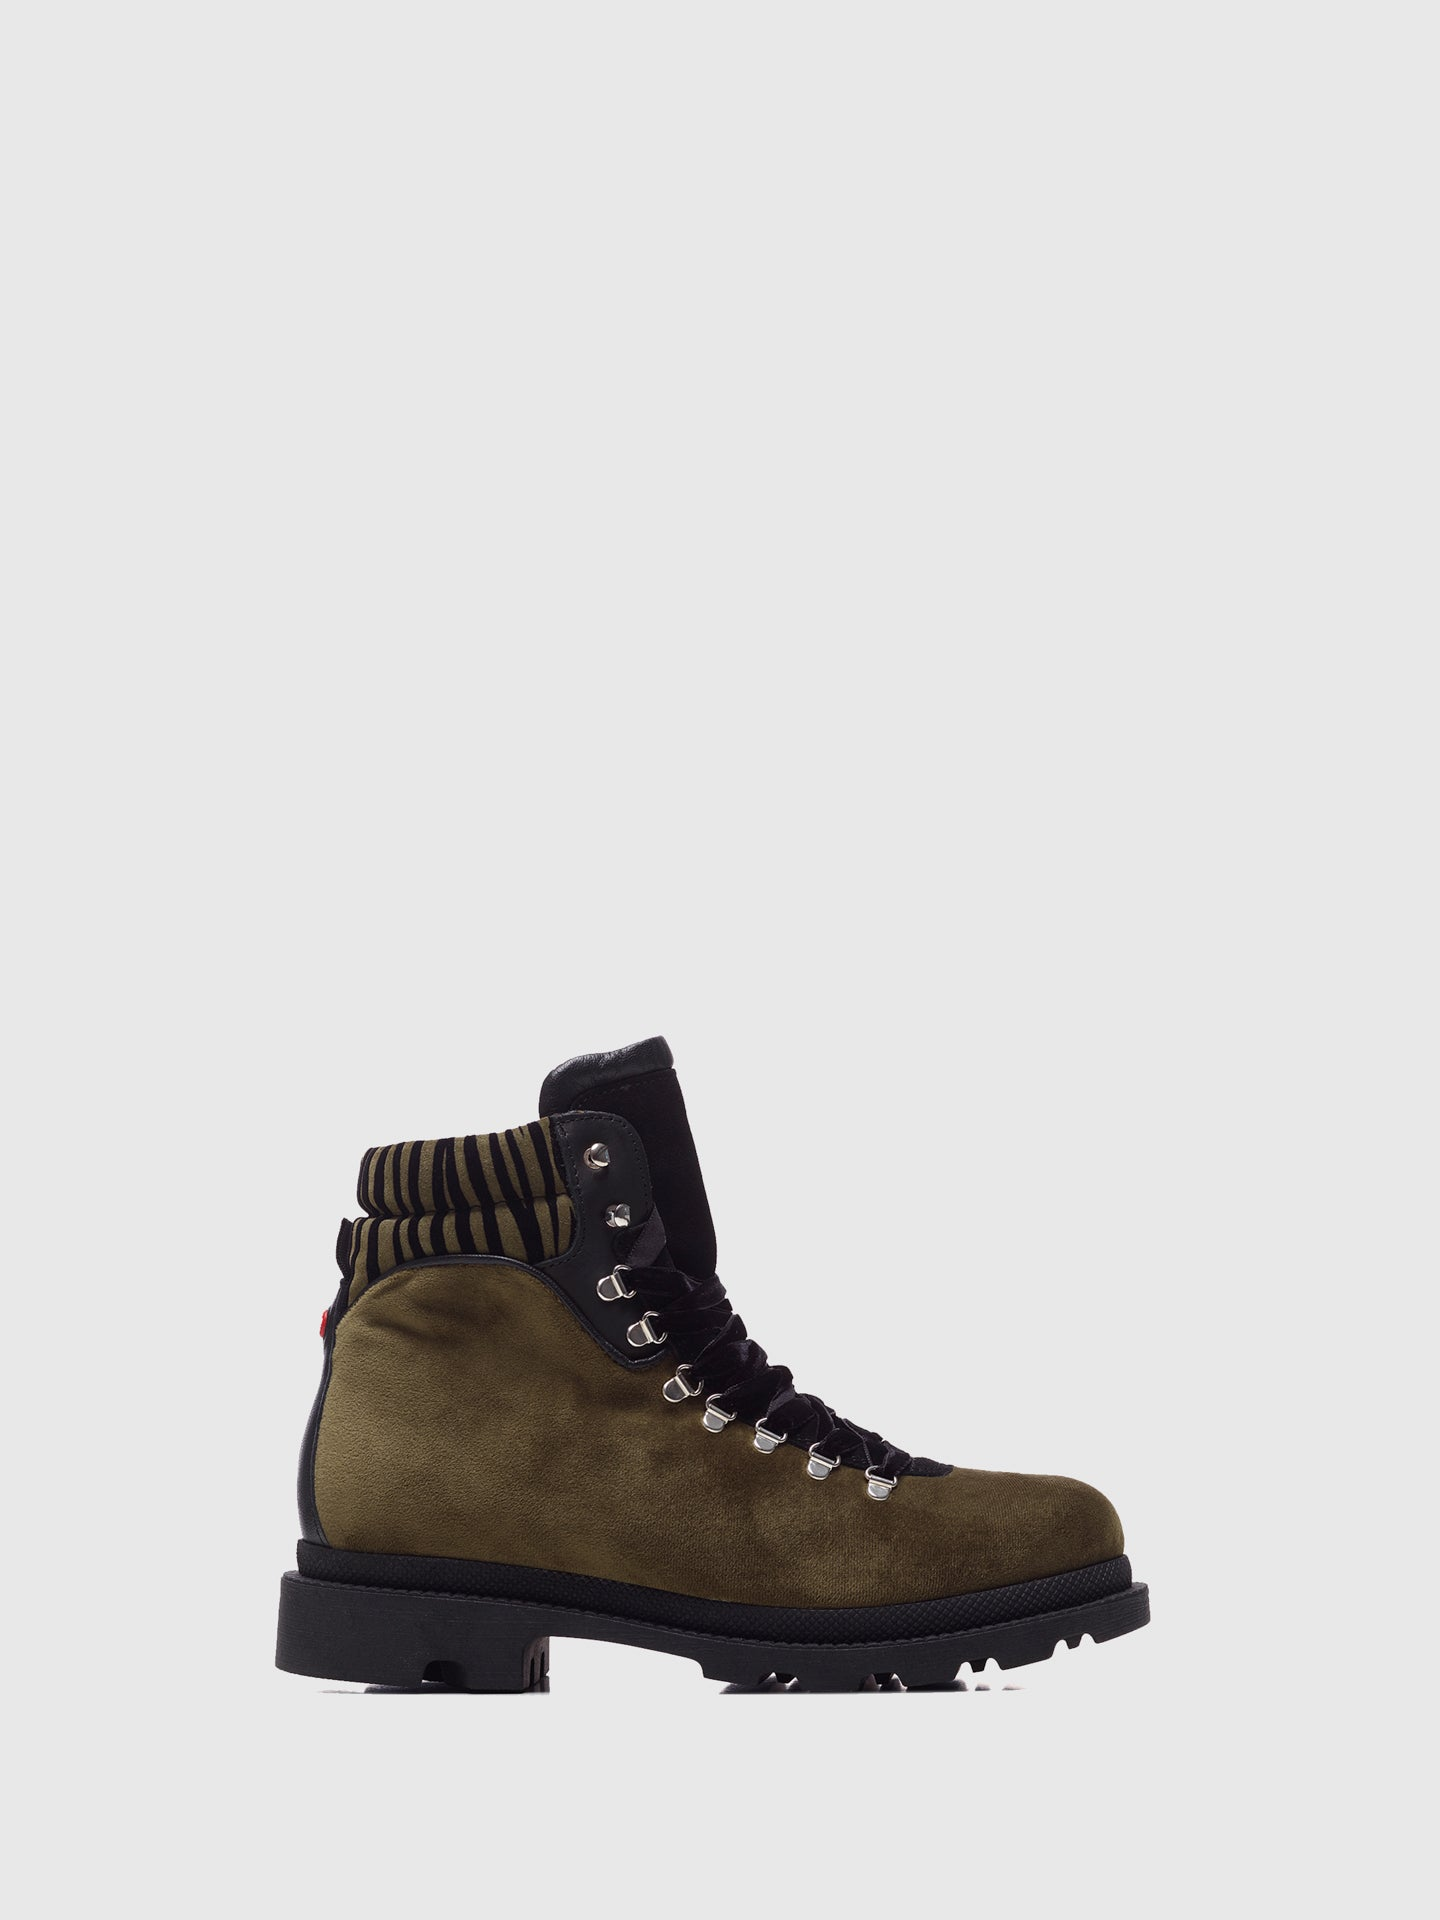 Nobrand Khaki Lace-up Boots